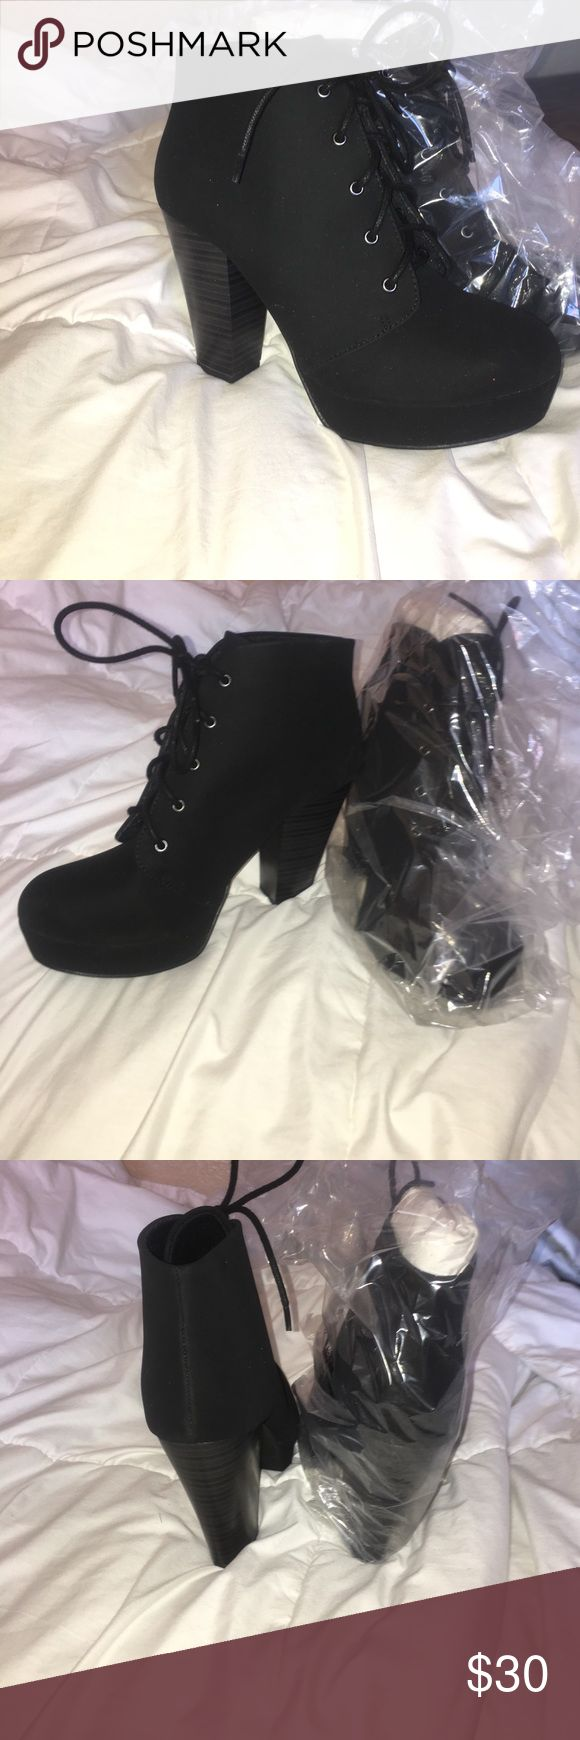 Black Suede Heels 7 Brand New Black Suede Pumps. Never worn. Soda Shoes Shoes Platforms